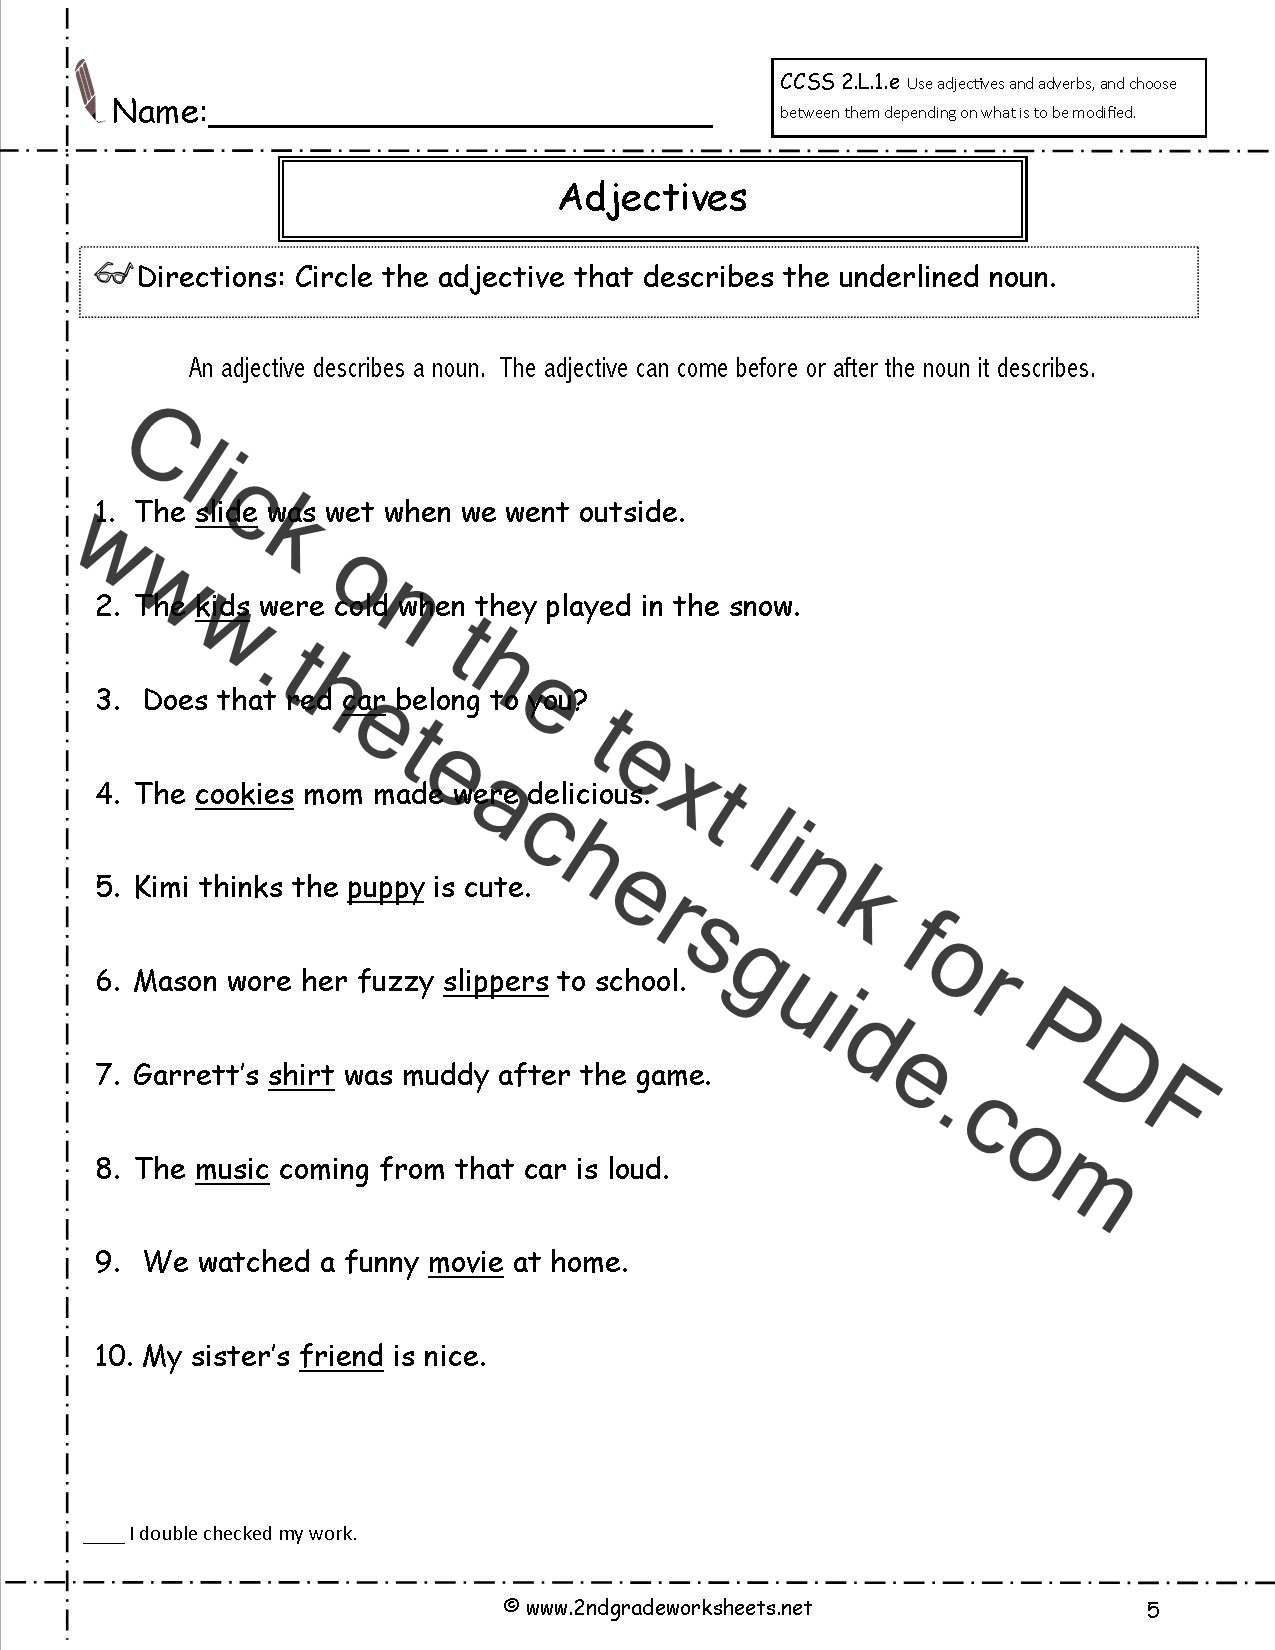 Worksheet Adjectives Worksheet For 3rd Grade adjectives worksheet for 2nd grade scalien free using and adverbs worksheets